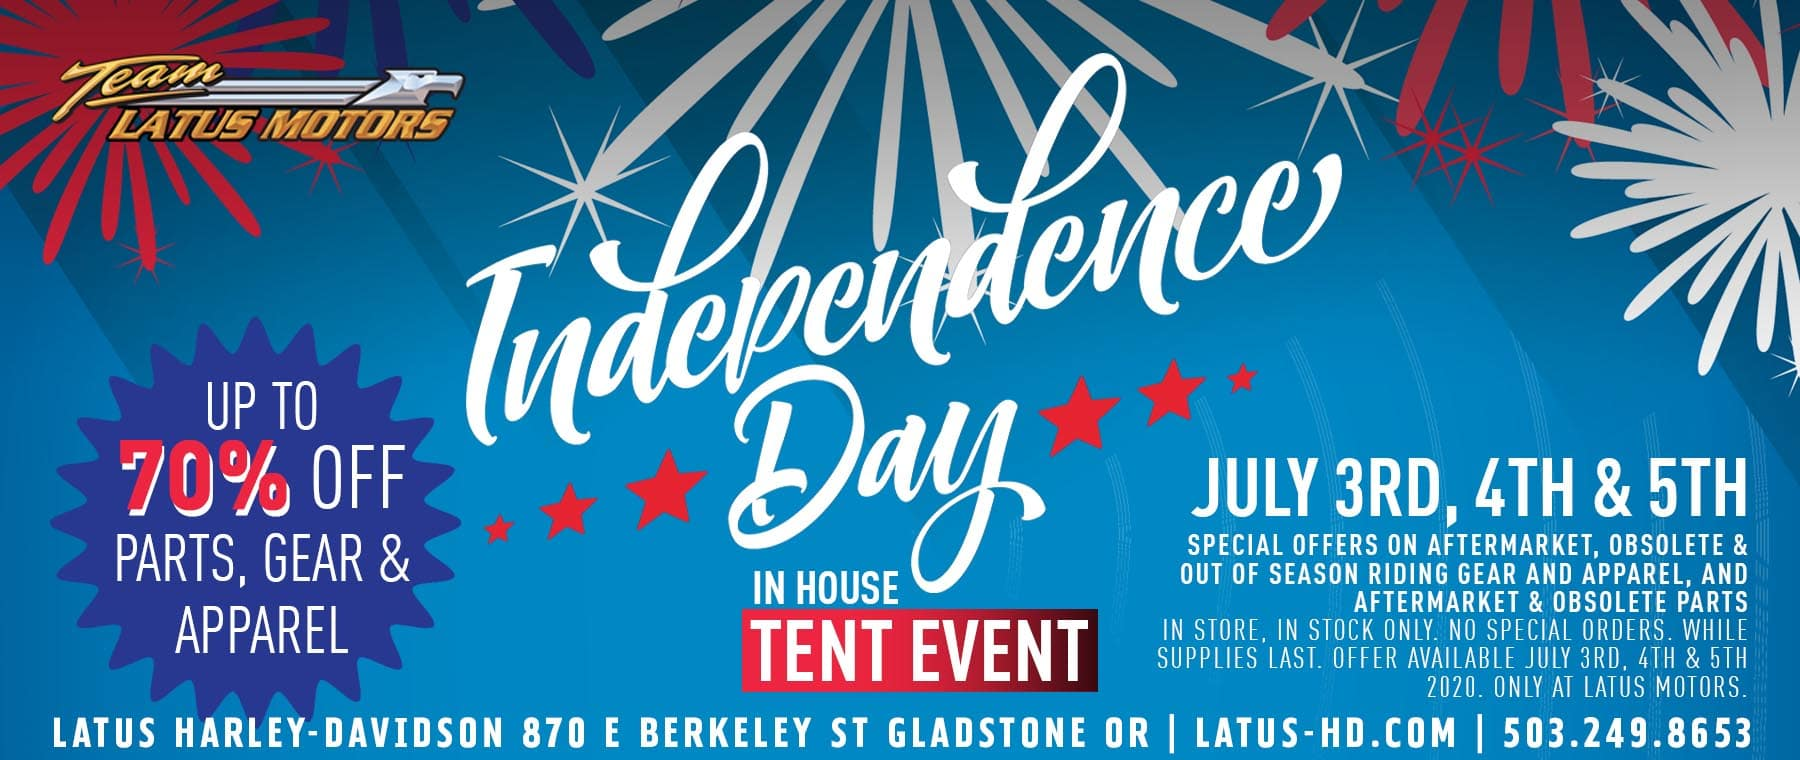 Latus Motors Independence Day In-house Tent Event